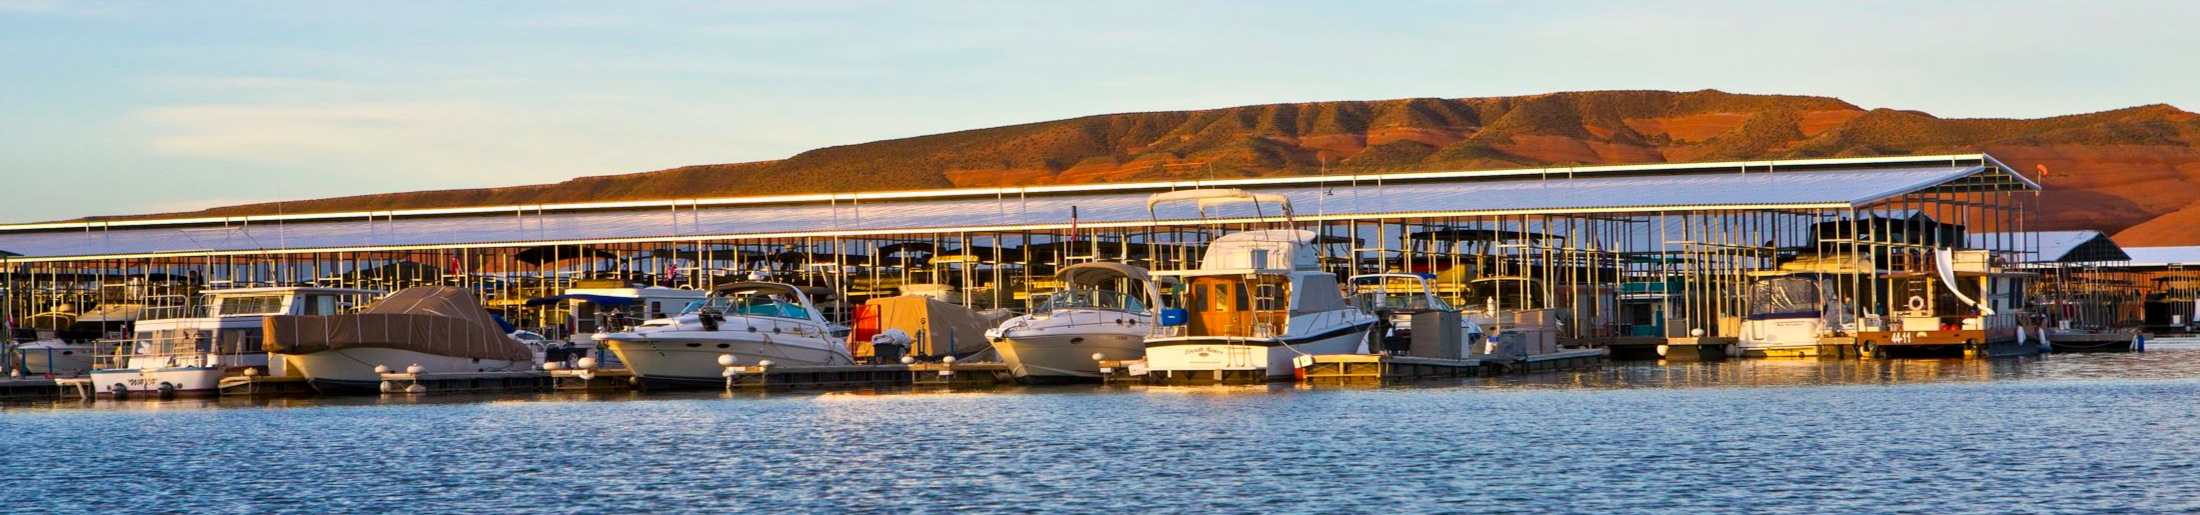 Covered Boat Slips at Bullfrog Marina on Lake Powell